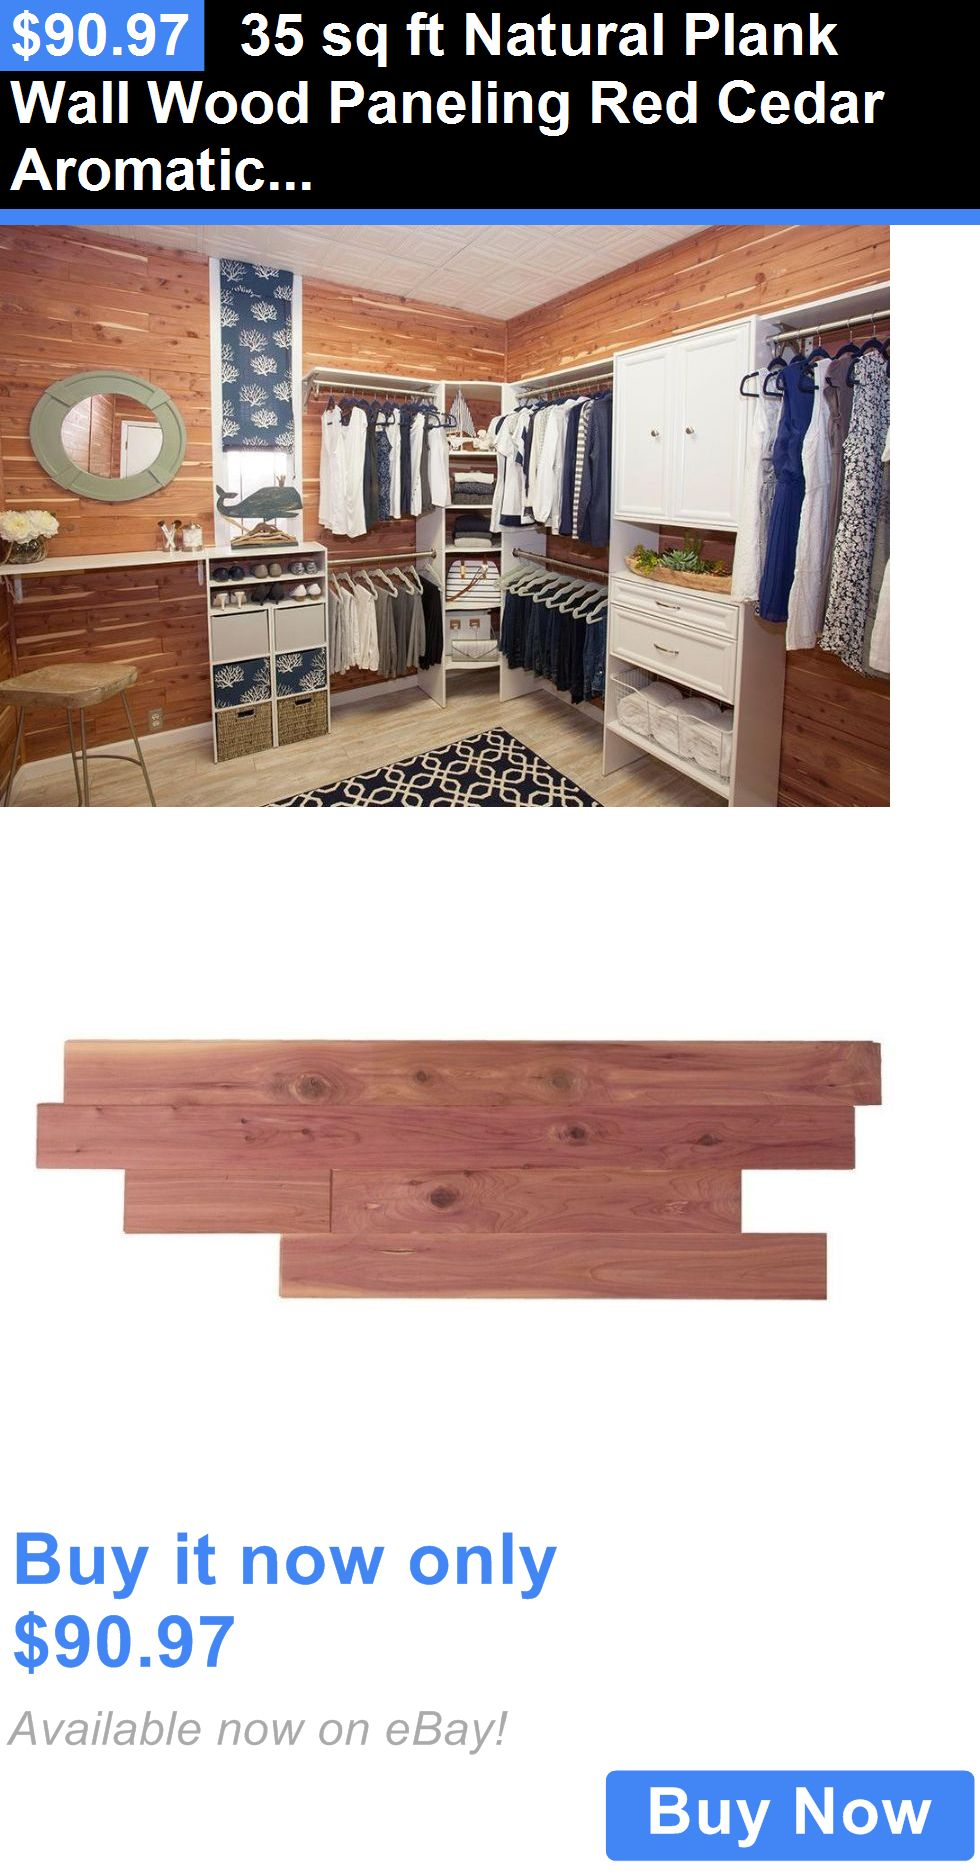 Home Decor 35 Sq Ft Natural Plank Wall Wood Paneling Red Cedar Aromatic Closet Liner Decor Buy It Now Only 90 97 Decor Buy Plank Walls Home Decor